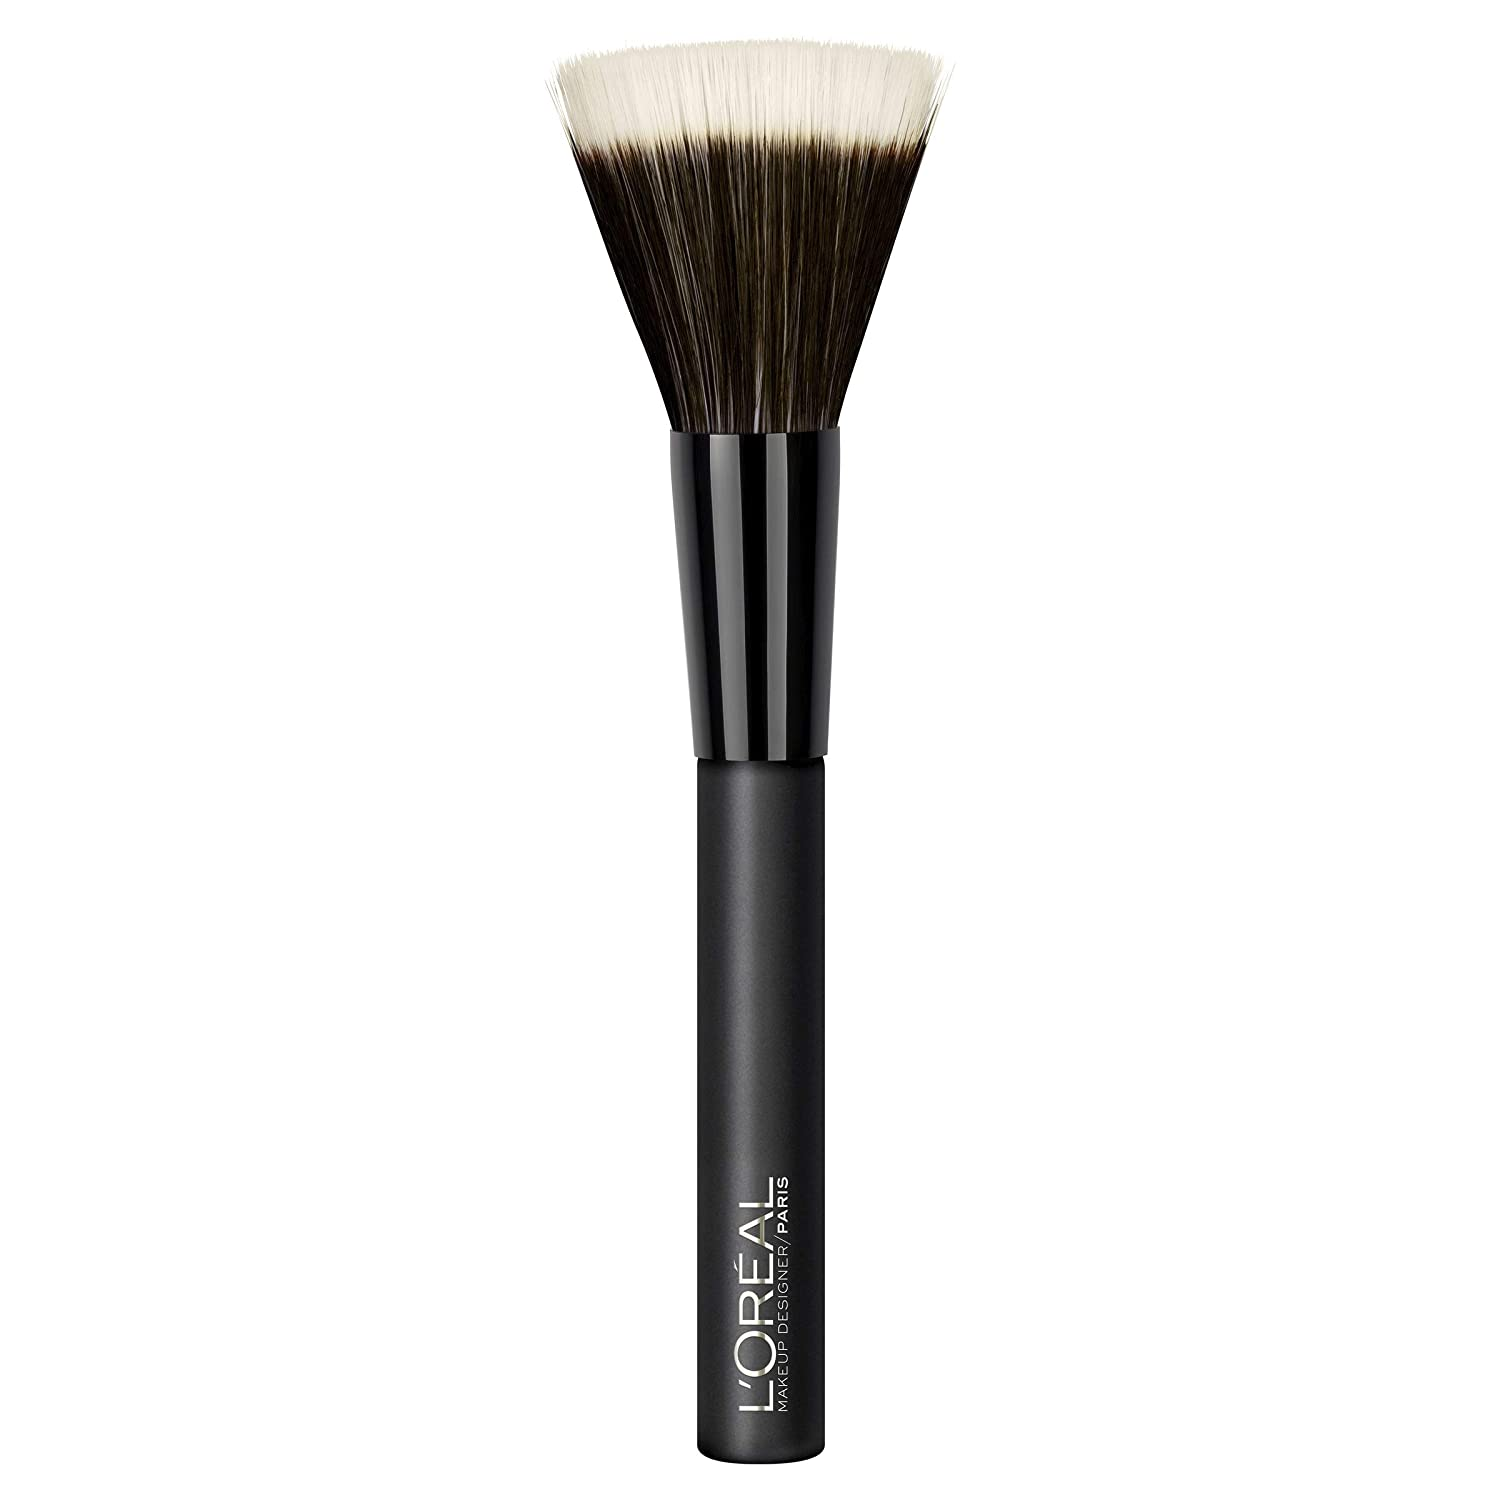 L'Oréal Paris OAP EYESHADOW BRUSH BE - brochas de maquillaje para ojos L' Oréal Paris Z03239